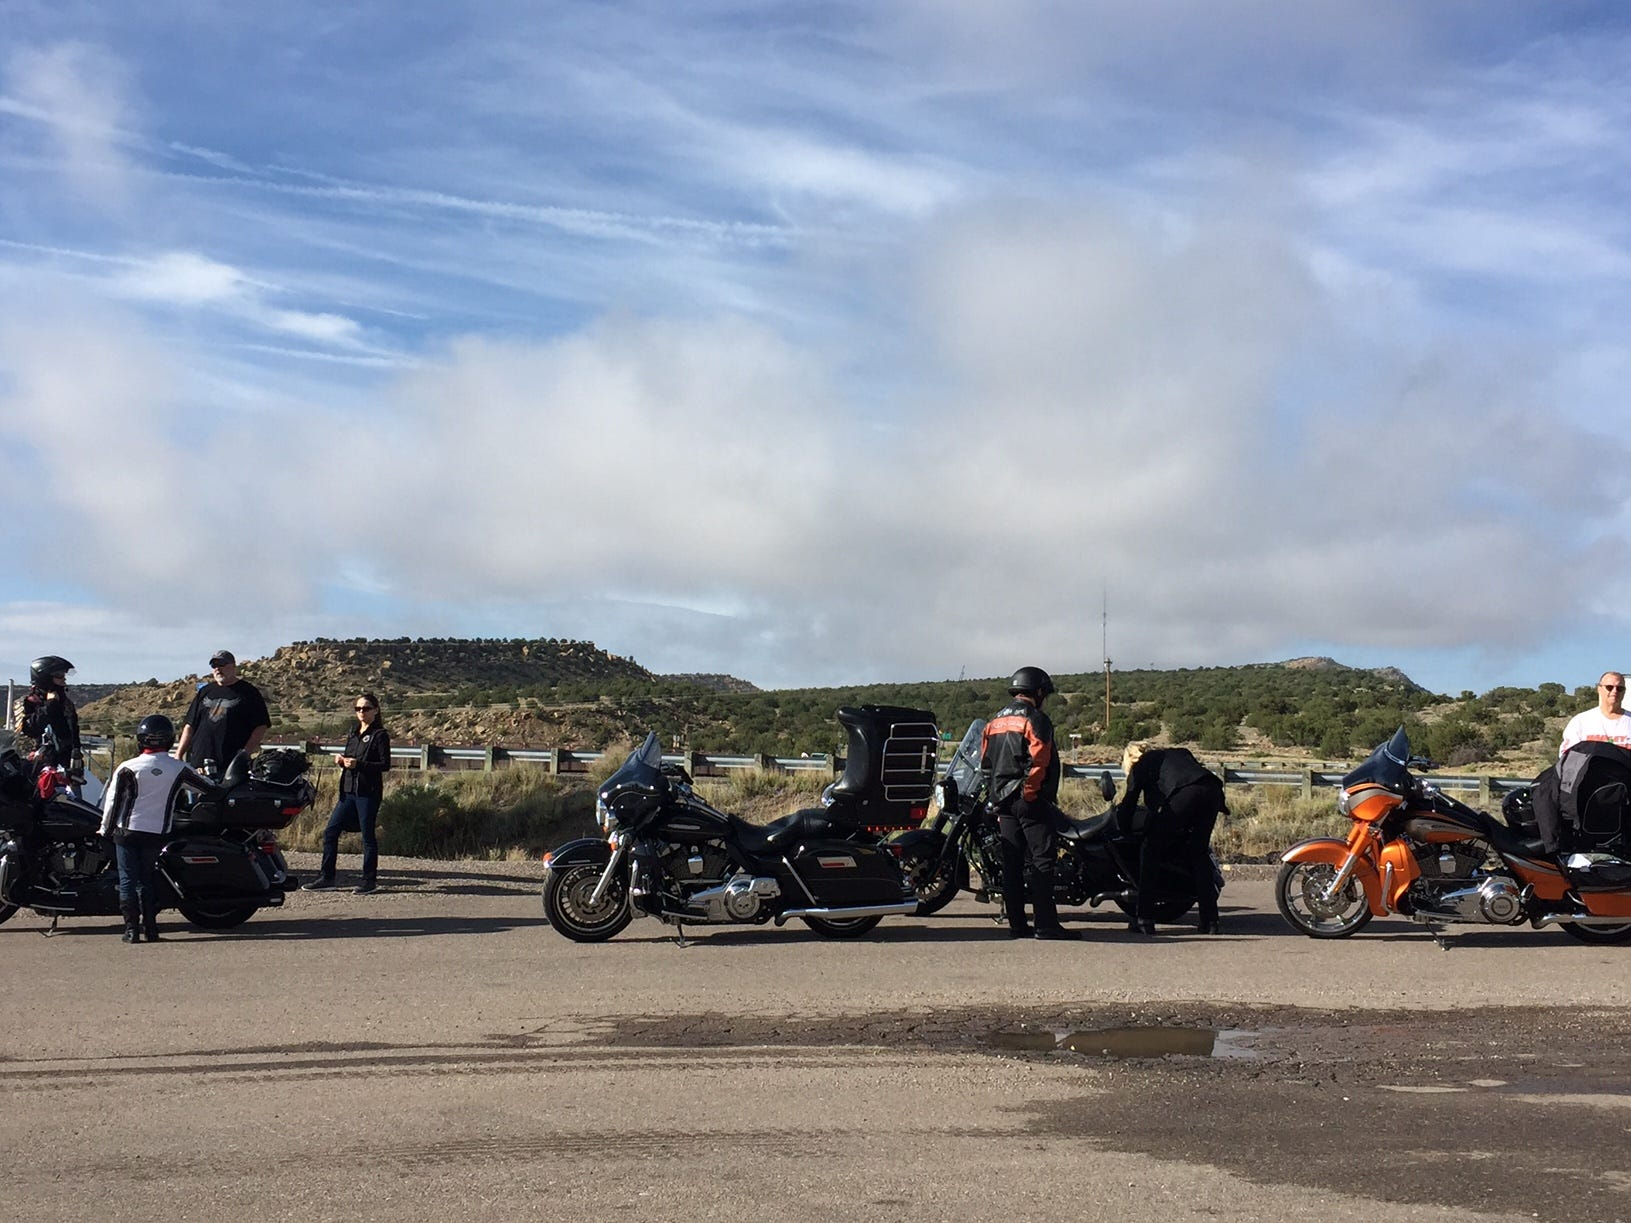 Riders on the Southwest trip from San Diego to Milwaukee stop for gas and take a break in Grants, New Mexico. The ride from Gallup, New Mexico, on I-40 was chilly and foggy with strong winds. They'll stop for lunch in Albuquerque.